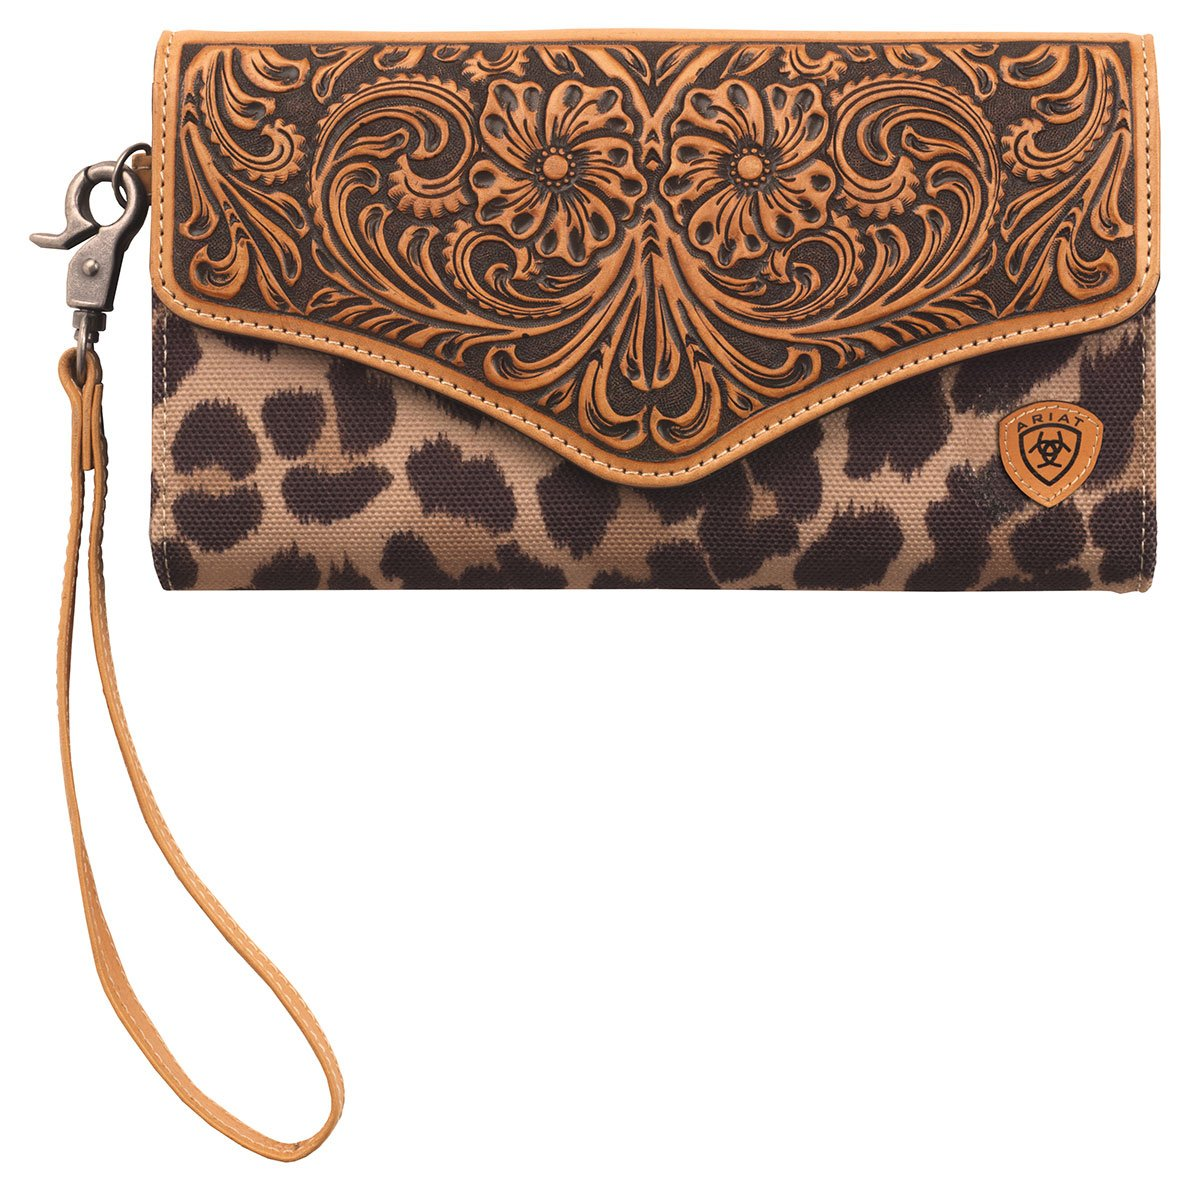 Leopard Clutch from Ariat